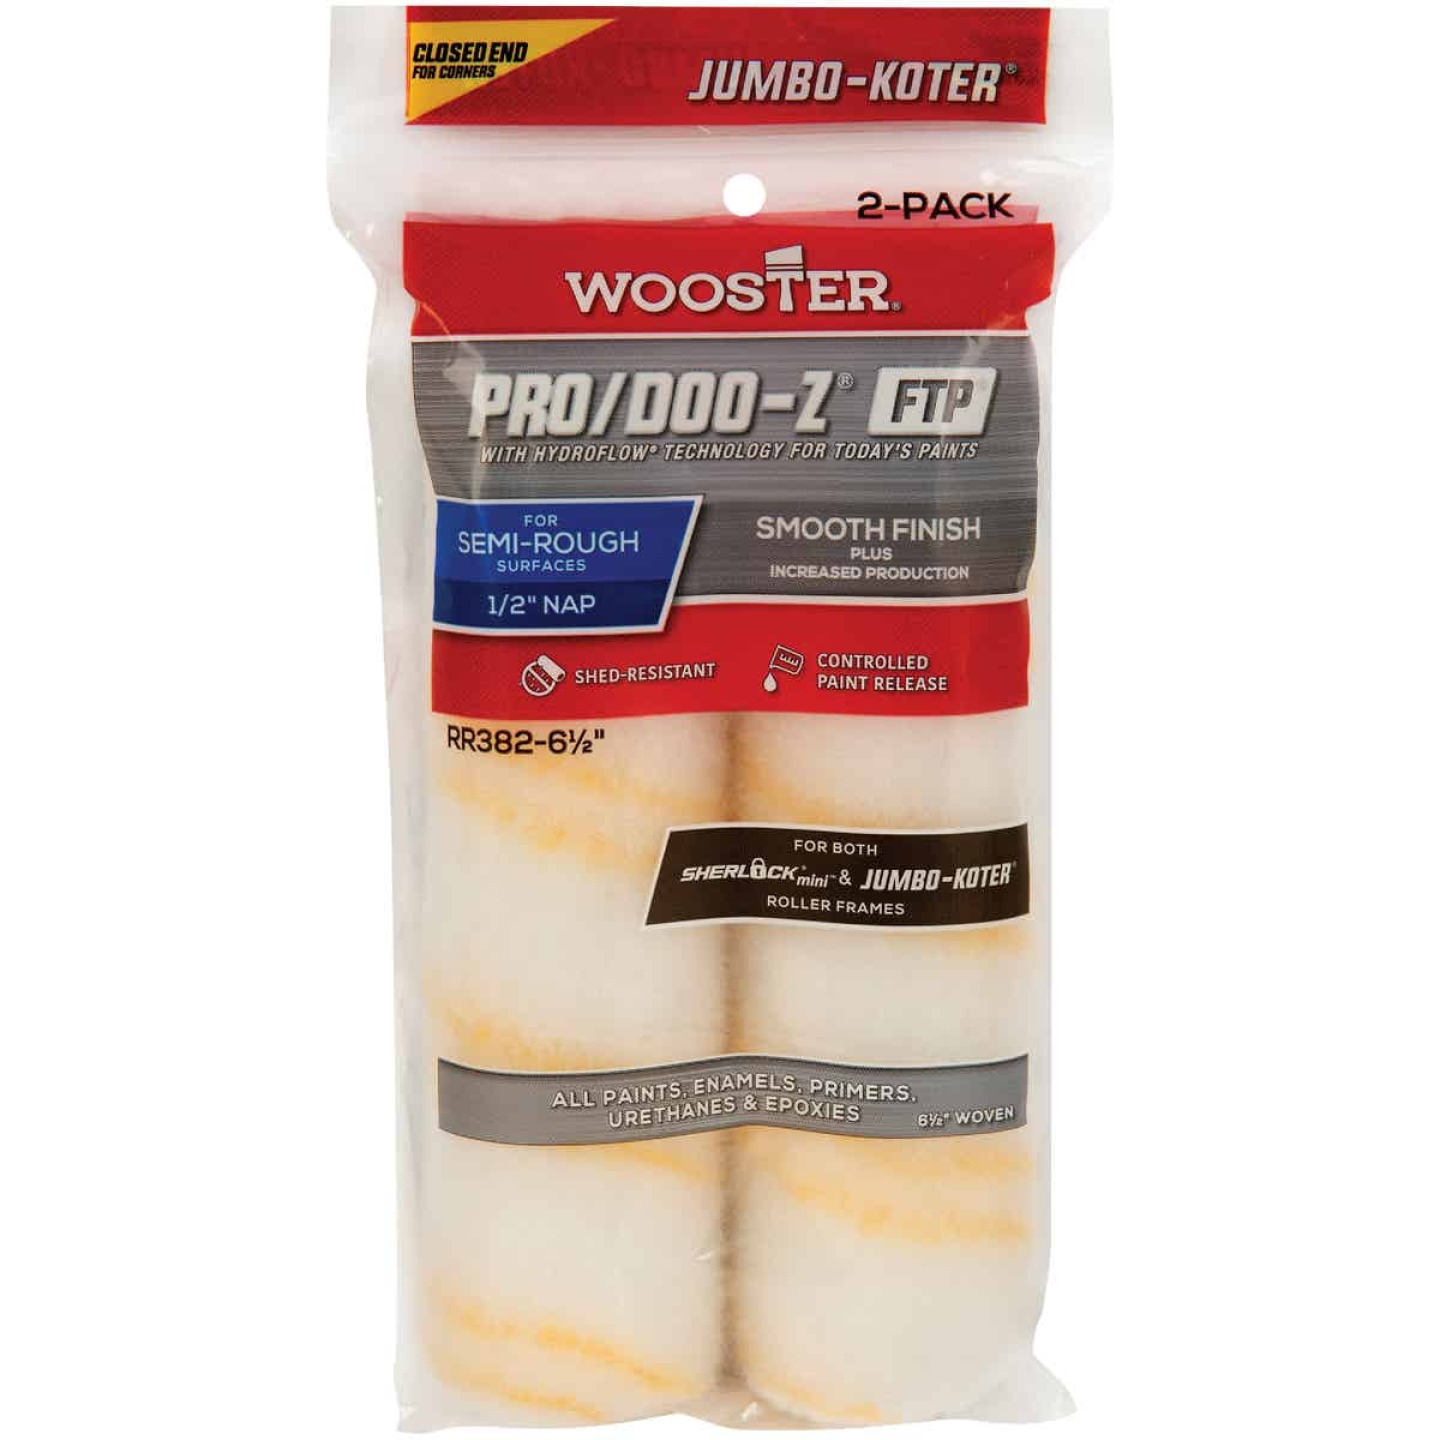 Wooster Jumbo-Koter P/D FTP 6-1/2 In. x 1/2 In. Woven Paint Roller Cover (2 Pack) Image 1